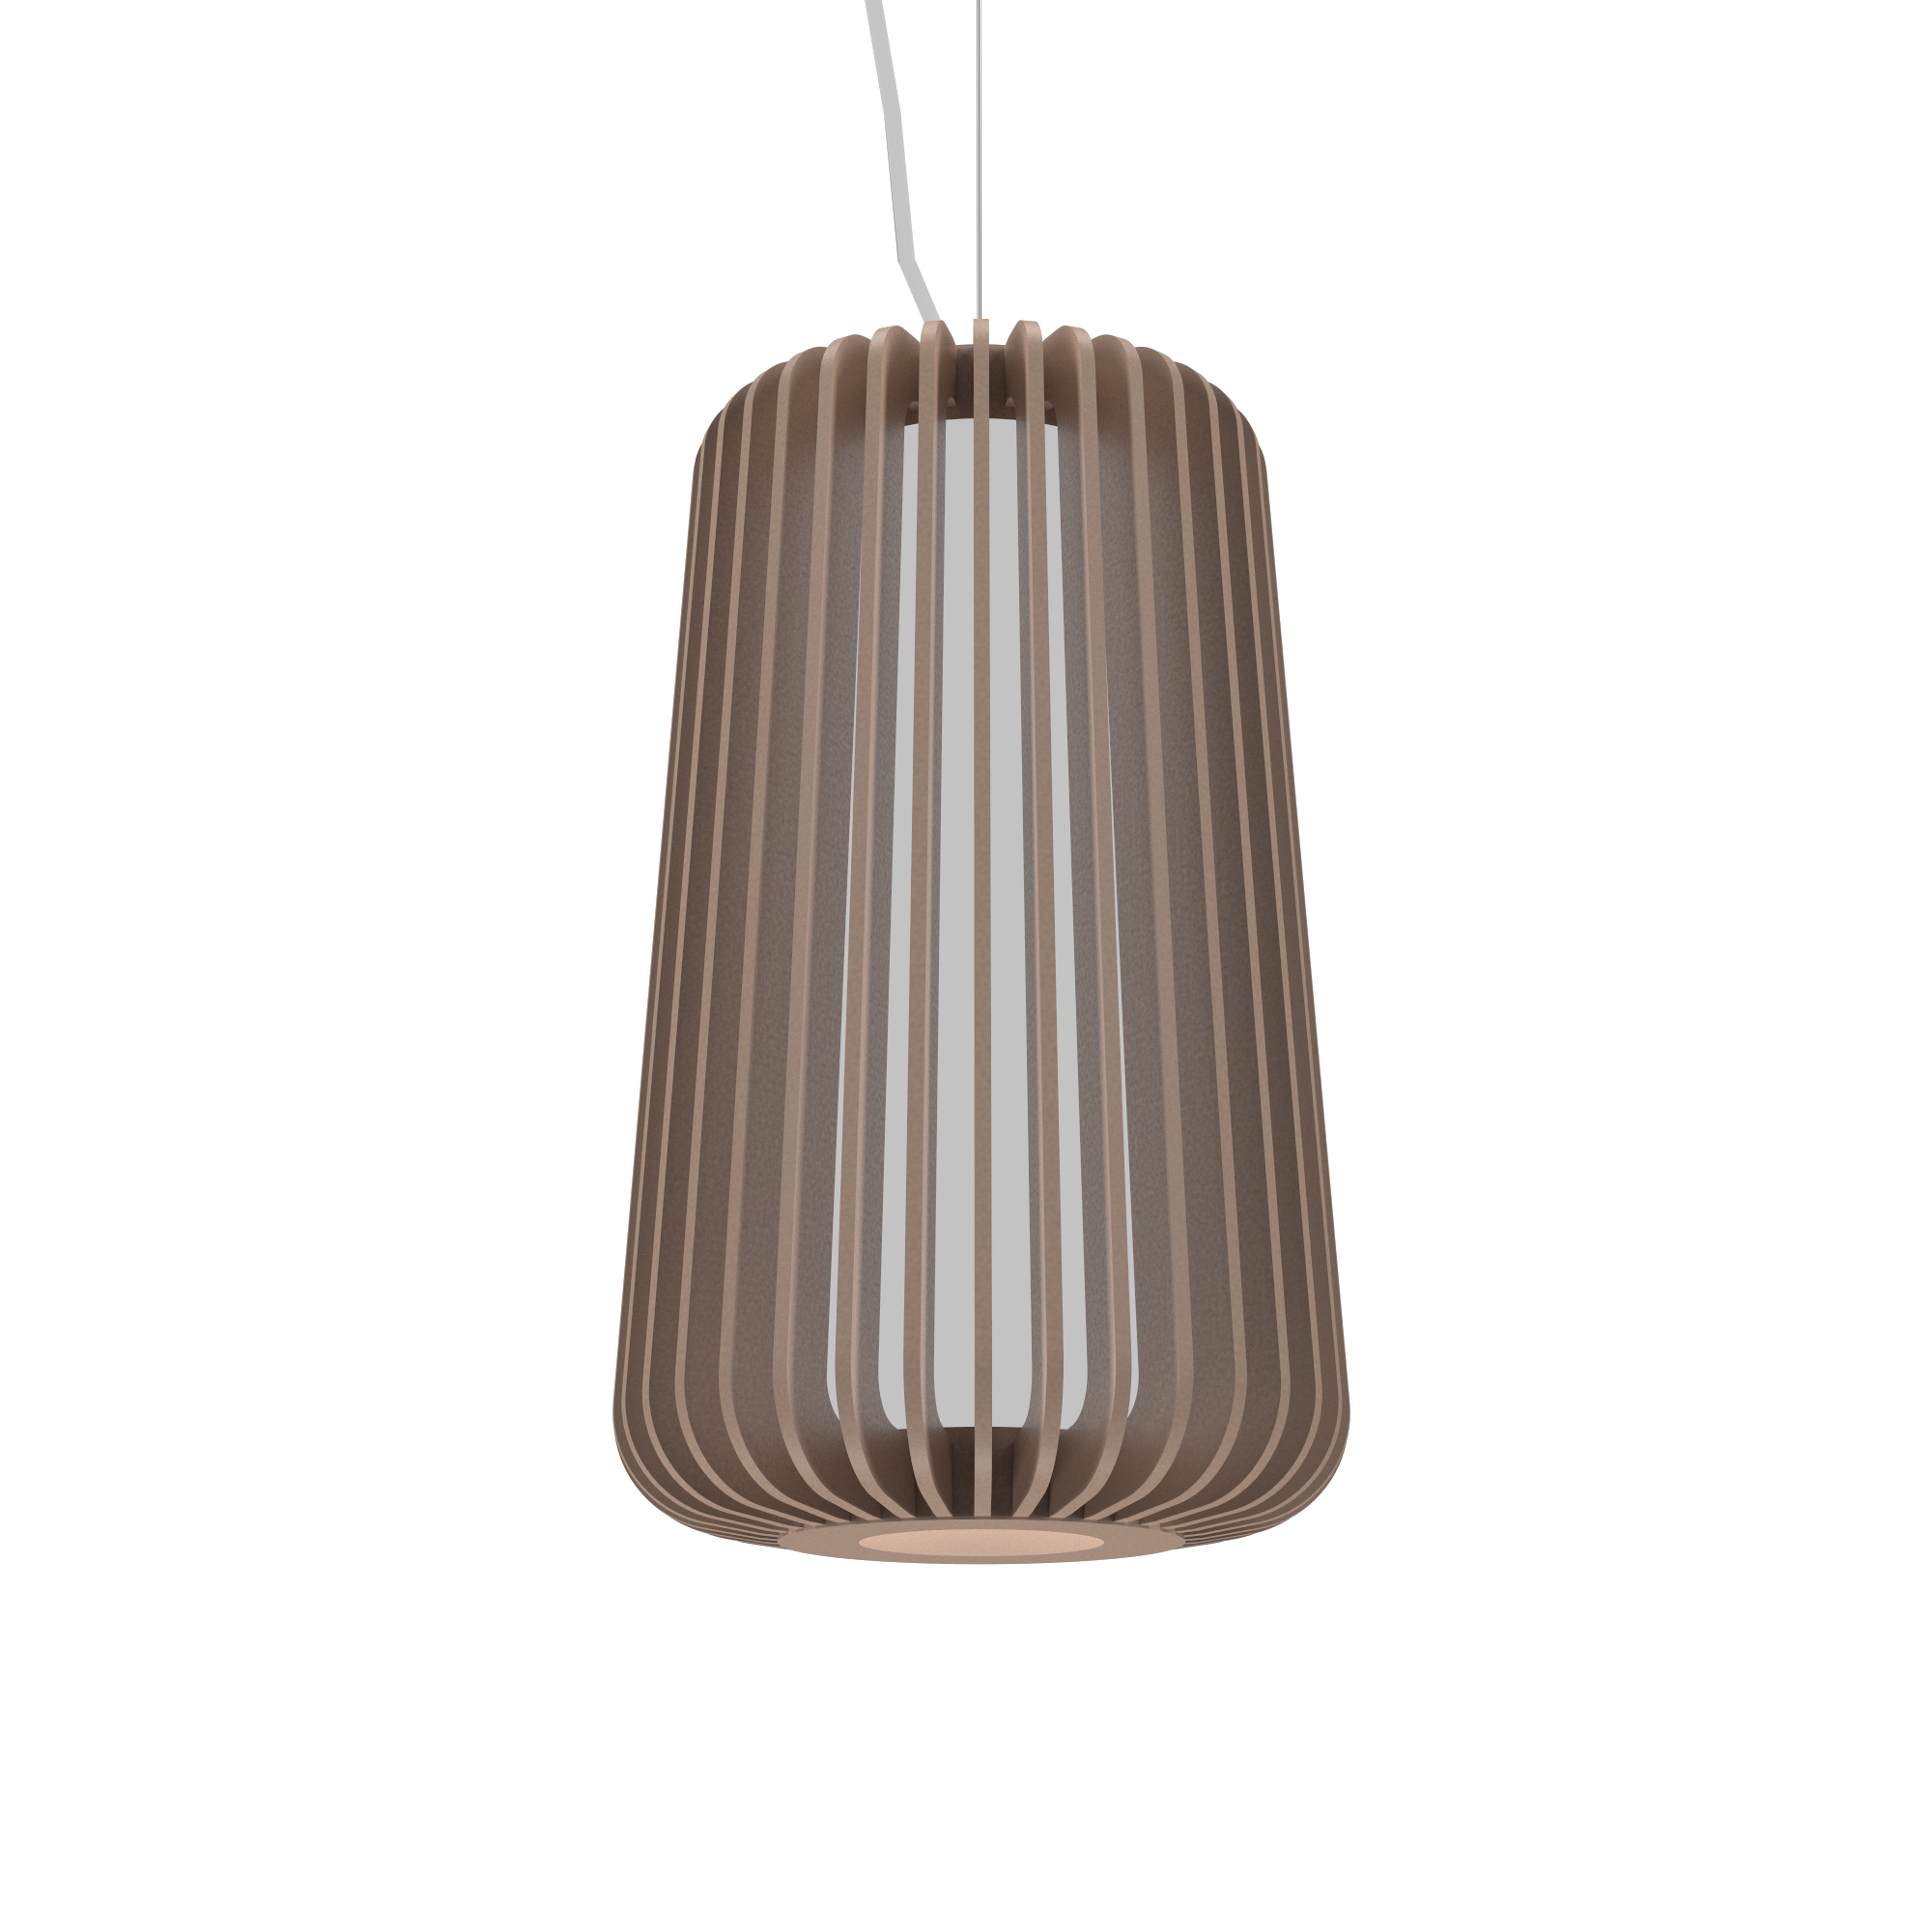 Pendant Lamp Accord Stecche Di Legno 1427 - Stecche Di Legno Line Accord Lighting | 33. Bronze